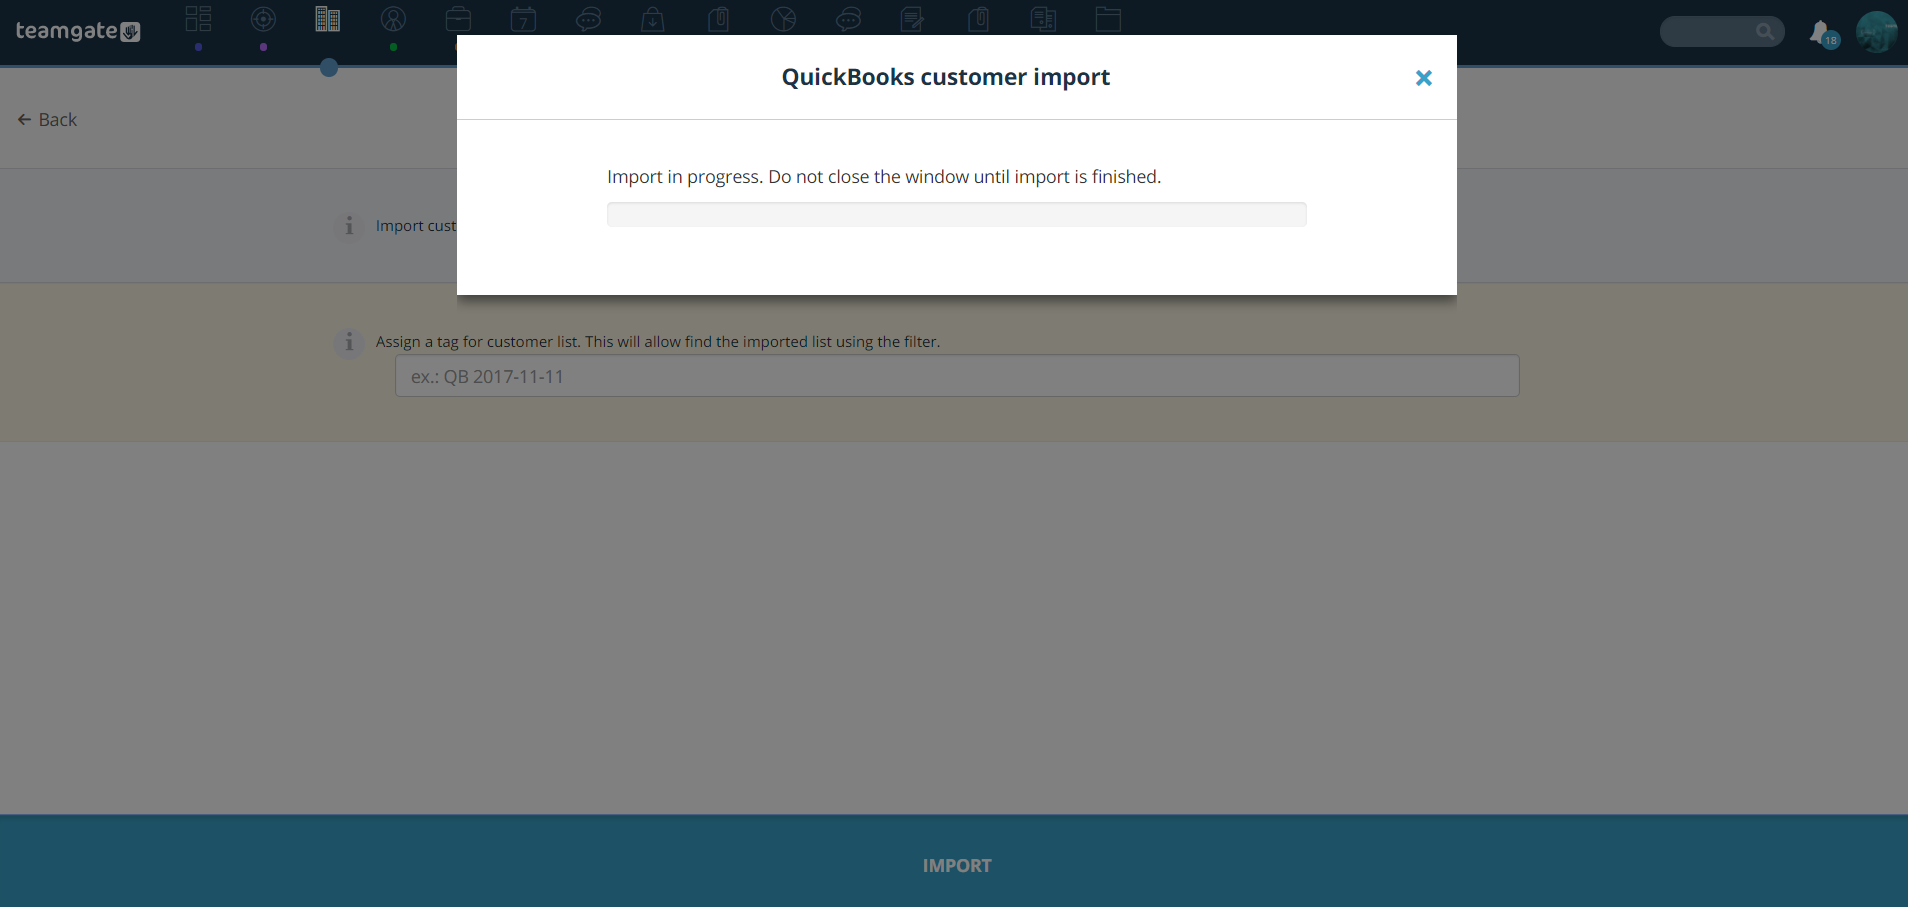 quickbooks-import-in-progress-teamgate.png